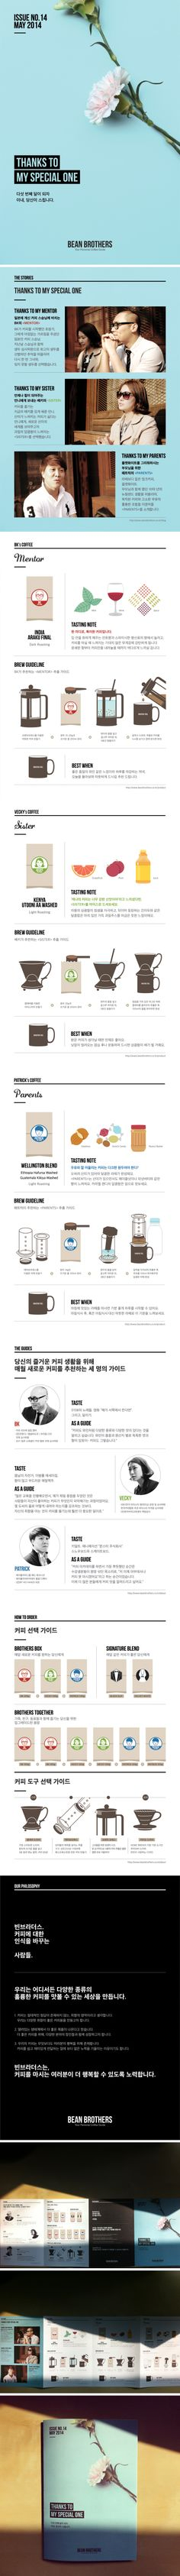 BEAN BROTHERS ISSUE No.14 MAY 2014 / 빈브라더스 5월의 박스 / Coffee Subscription / Editorial Design / Leaflet Design / Thanks To My Special One www.beanbrothers.co.kr